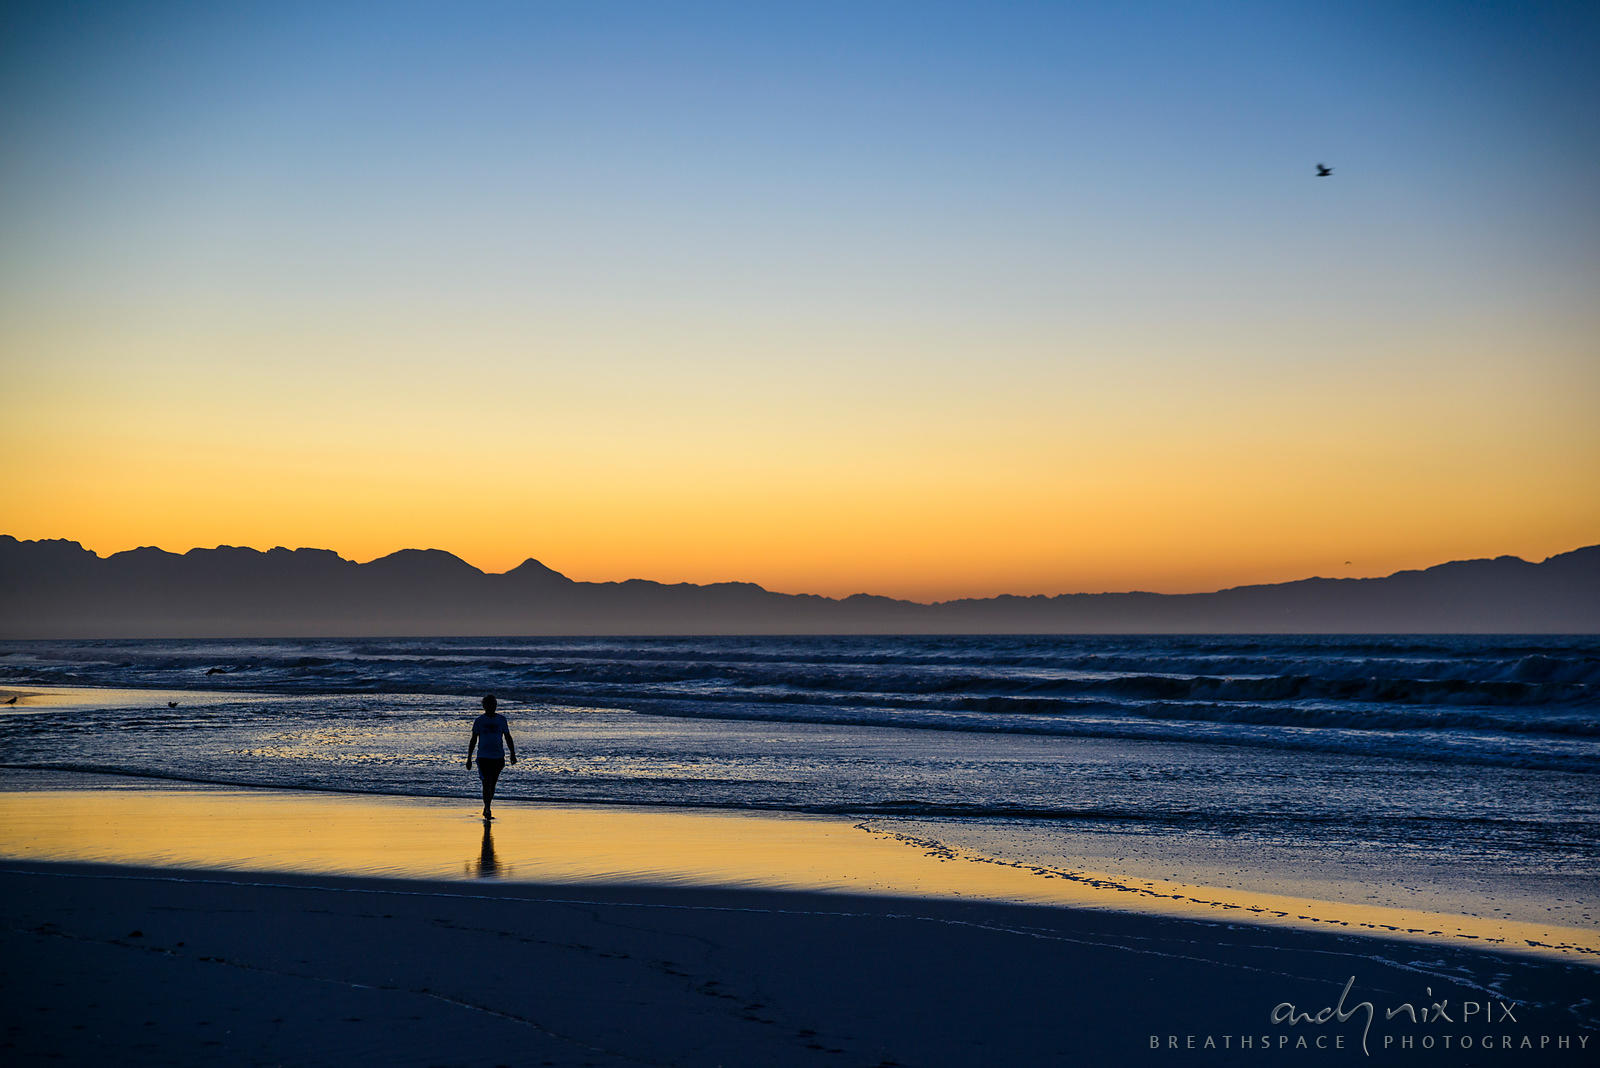 One silhouetted person  walking on the beach at dawn